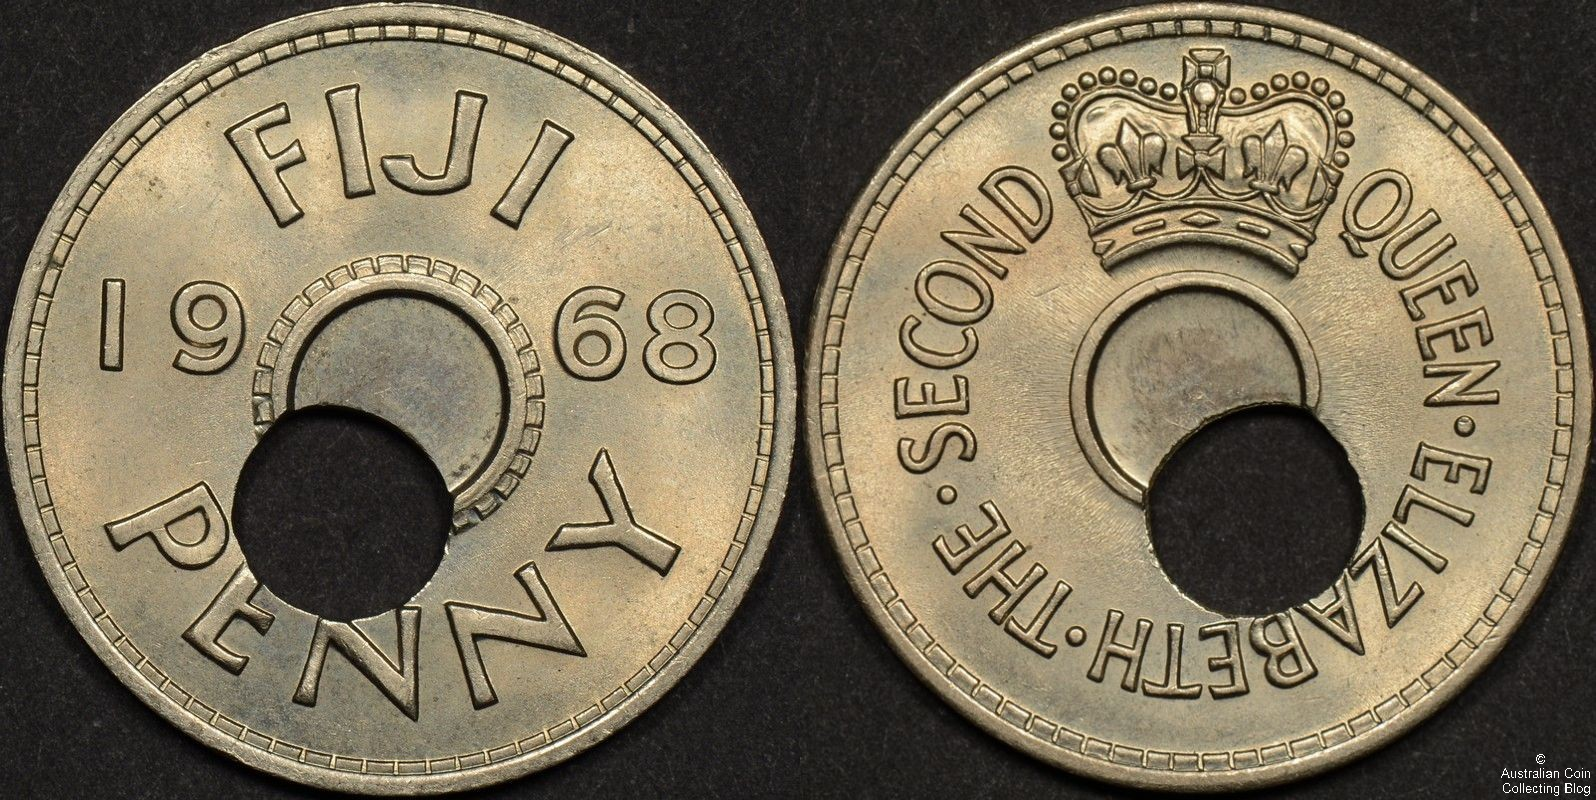 Fiji 1968 Penny Off Center Hole Error